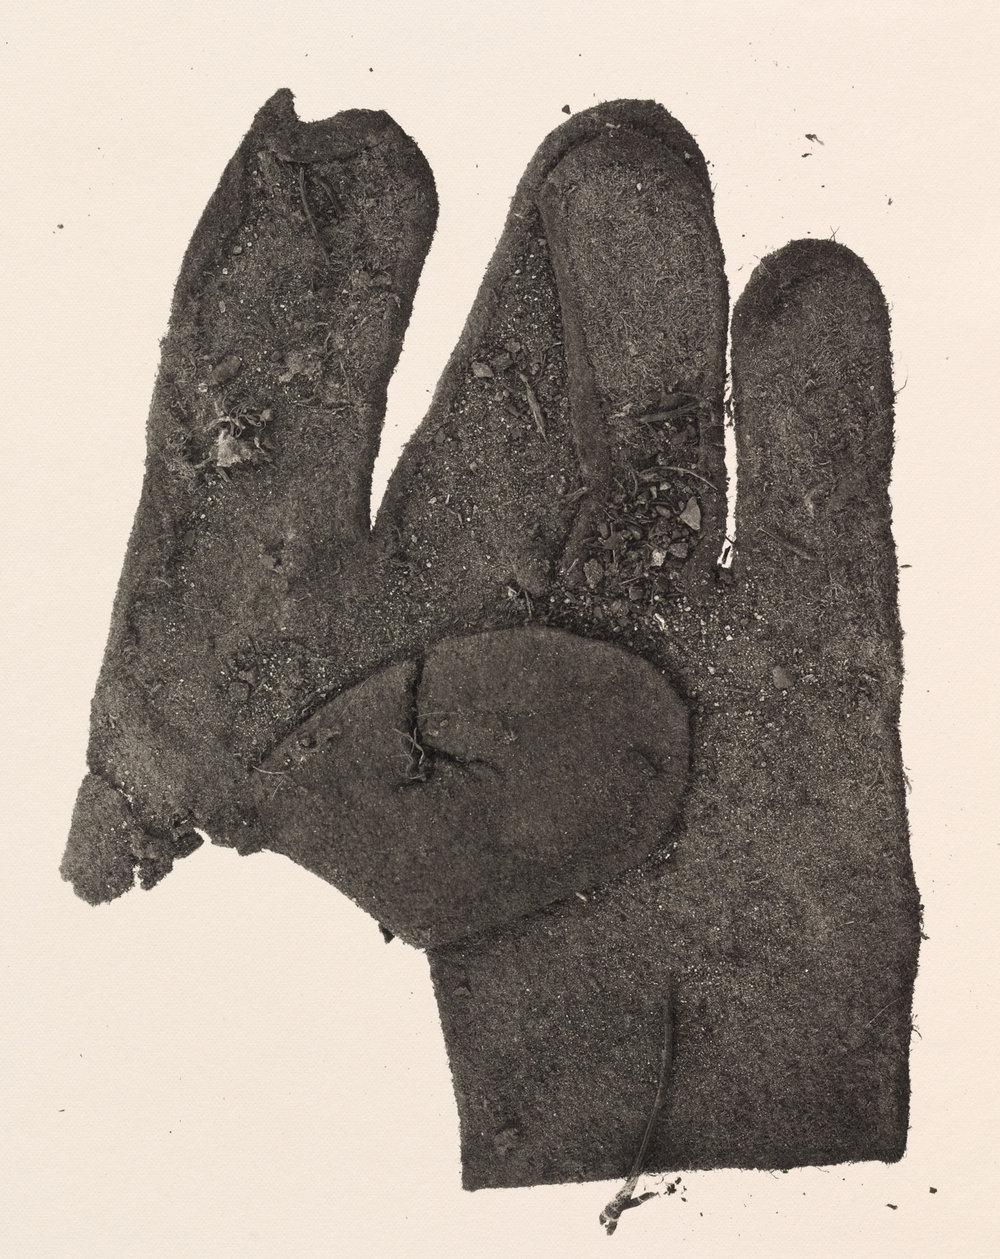 Flat Glove , New York, 1975 Platinum-palladium print © The Irving Penn Foundation